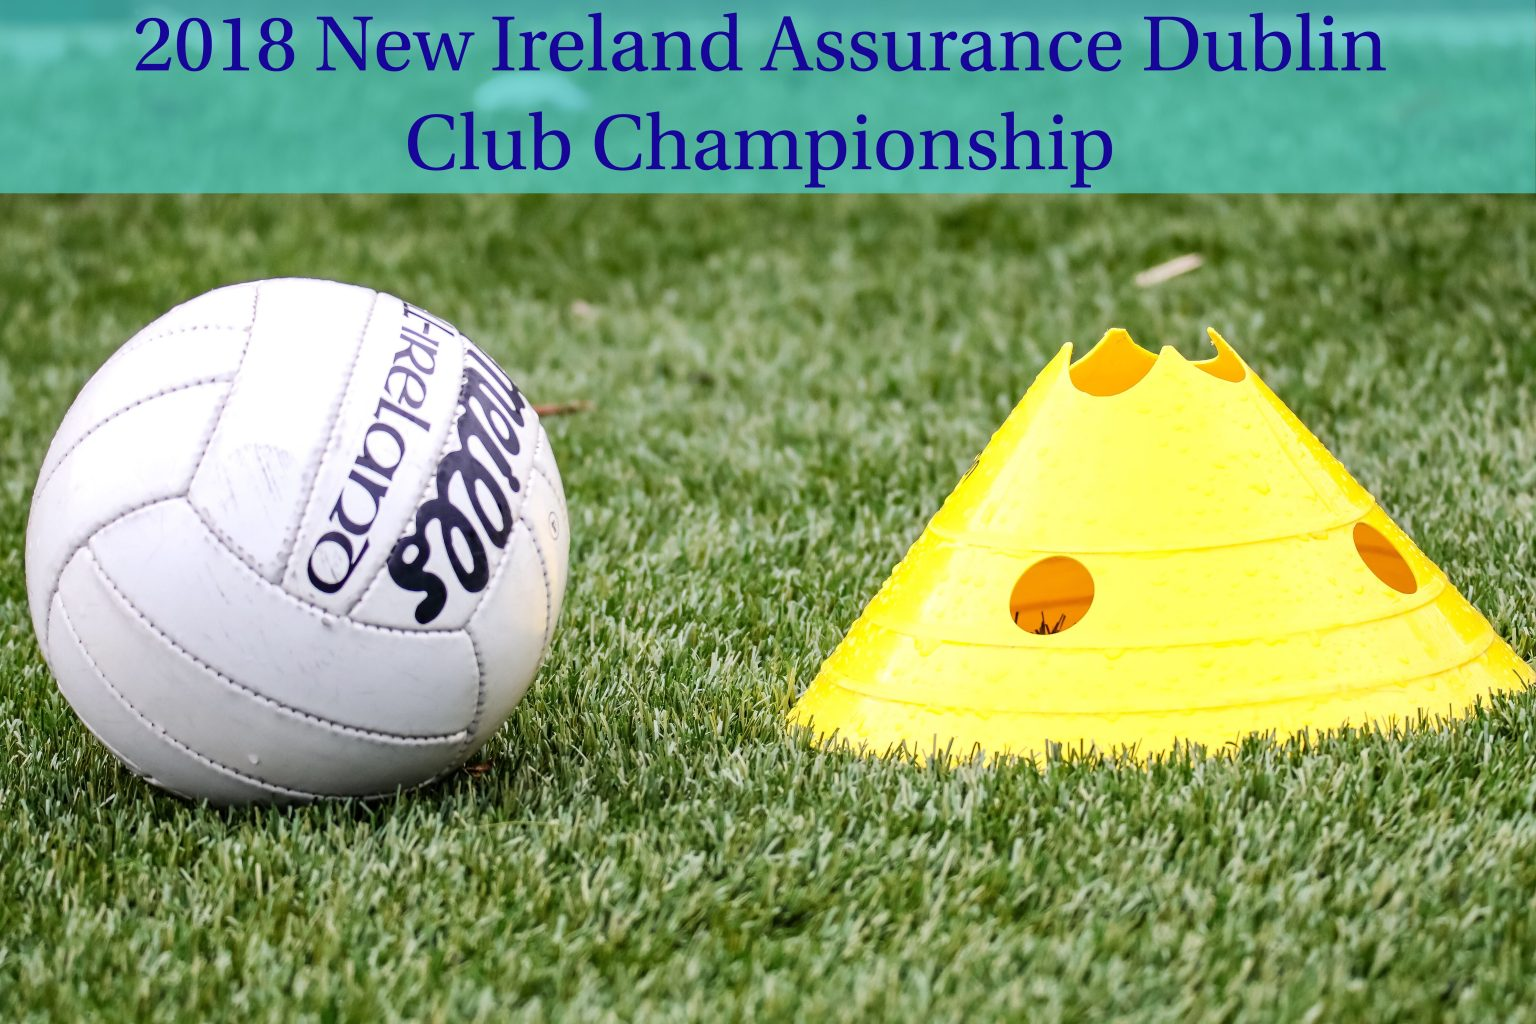 White Gaelic Football And Yellow Cone On A Green Grass Pitch With Green Banner With the Wording 2018 New Ireland Assurance Dublin Club Championship